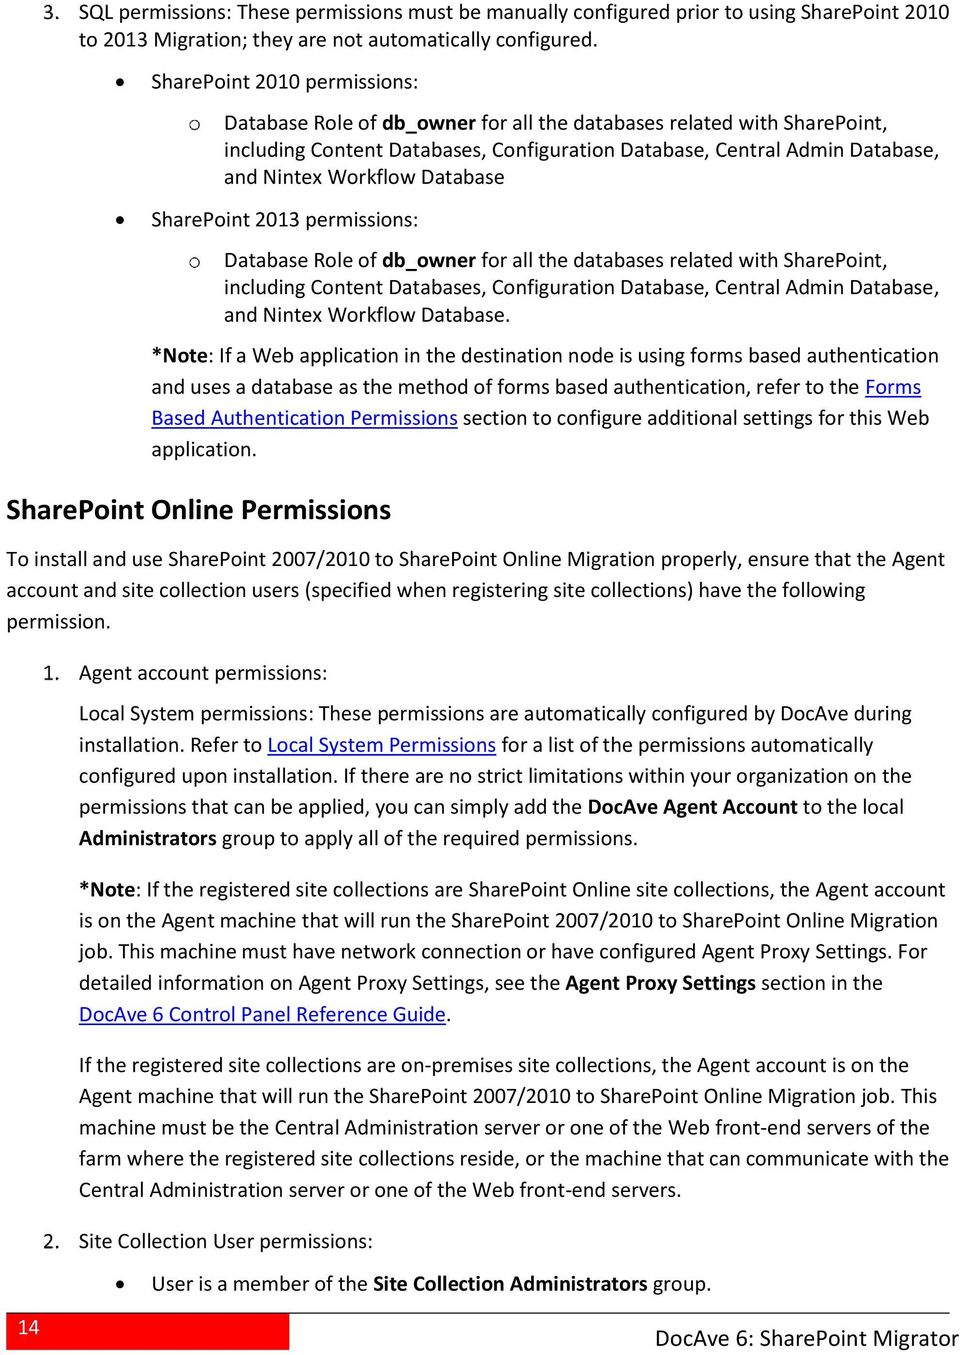 Database SharePoint 2013 permissions: Database Role of db_owner for all the databases related with SharePoint, including Content Databases, Configuration Database, Central Admin Database, and Nintex